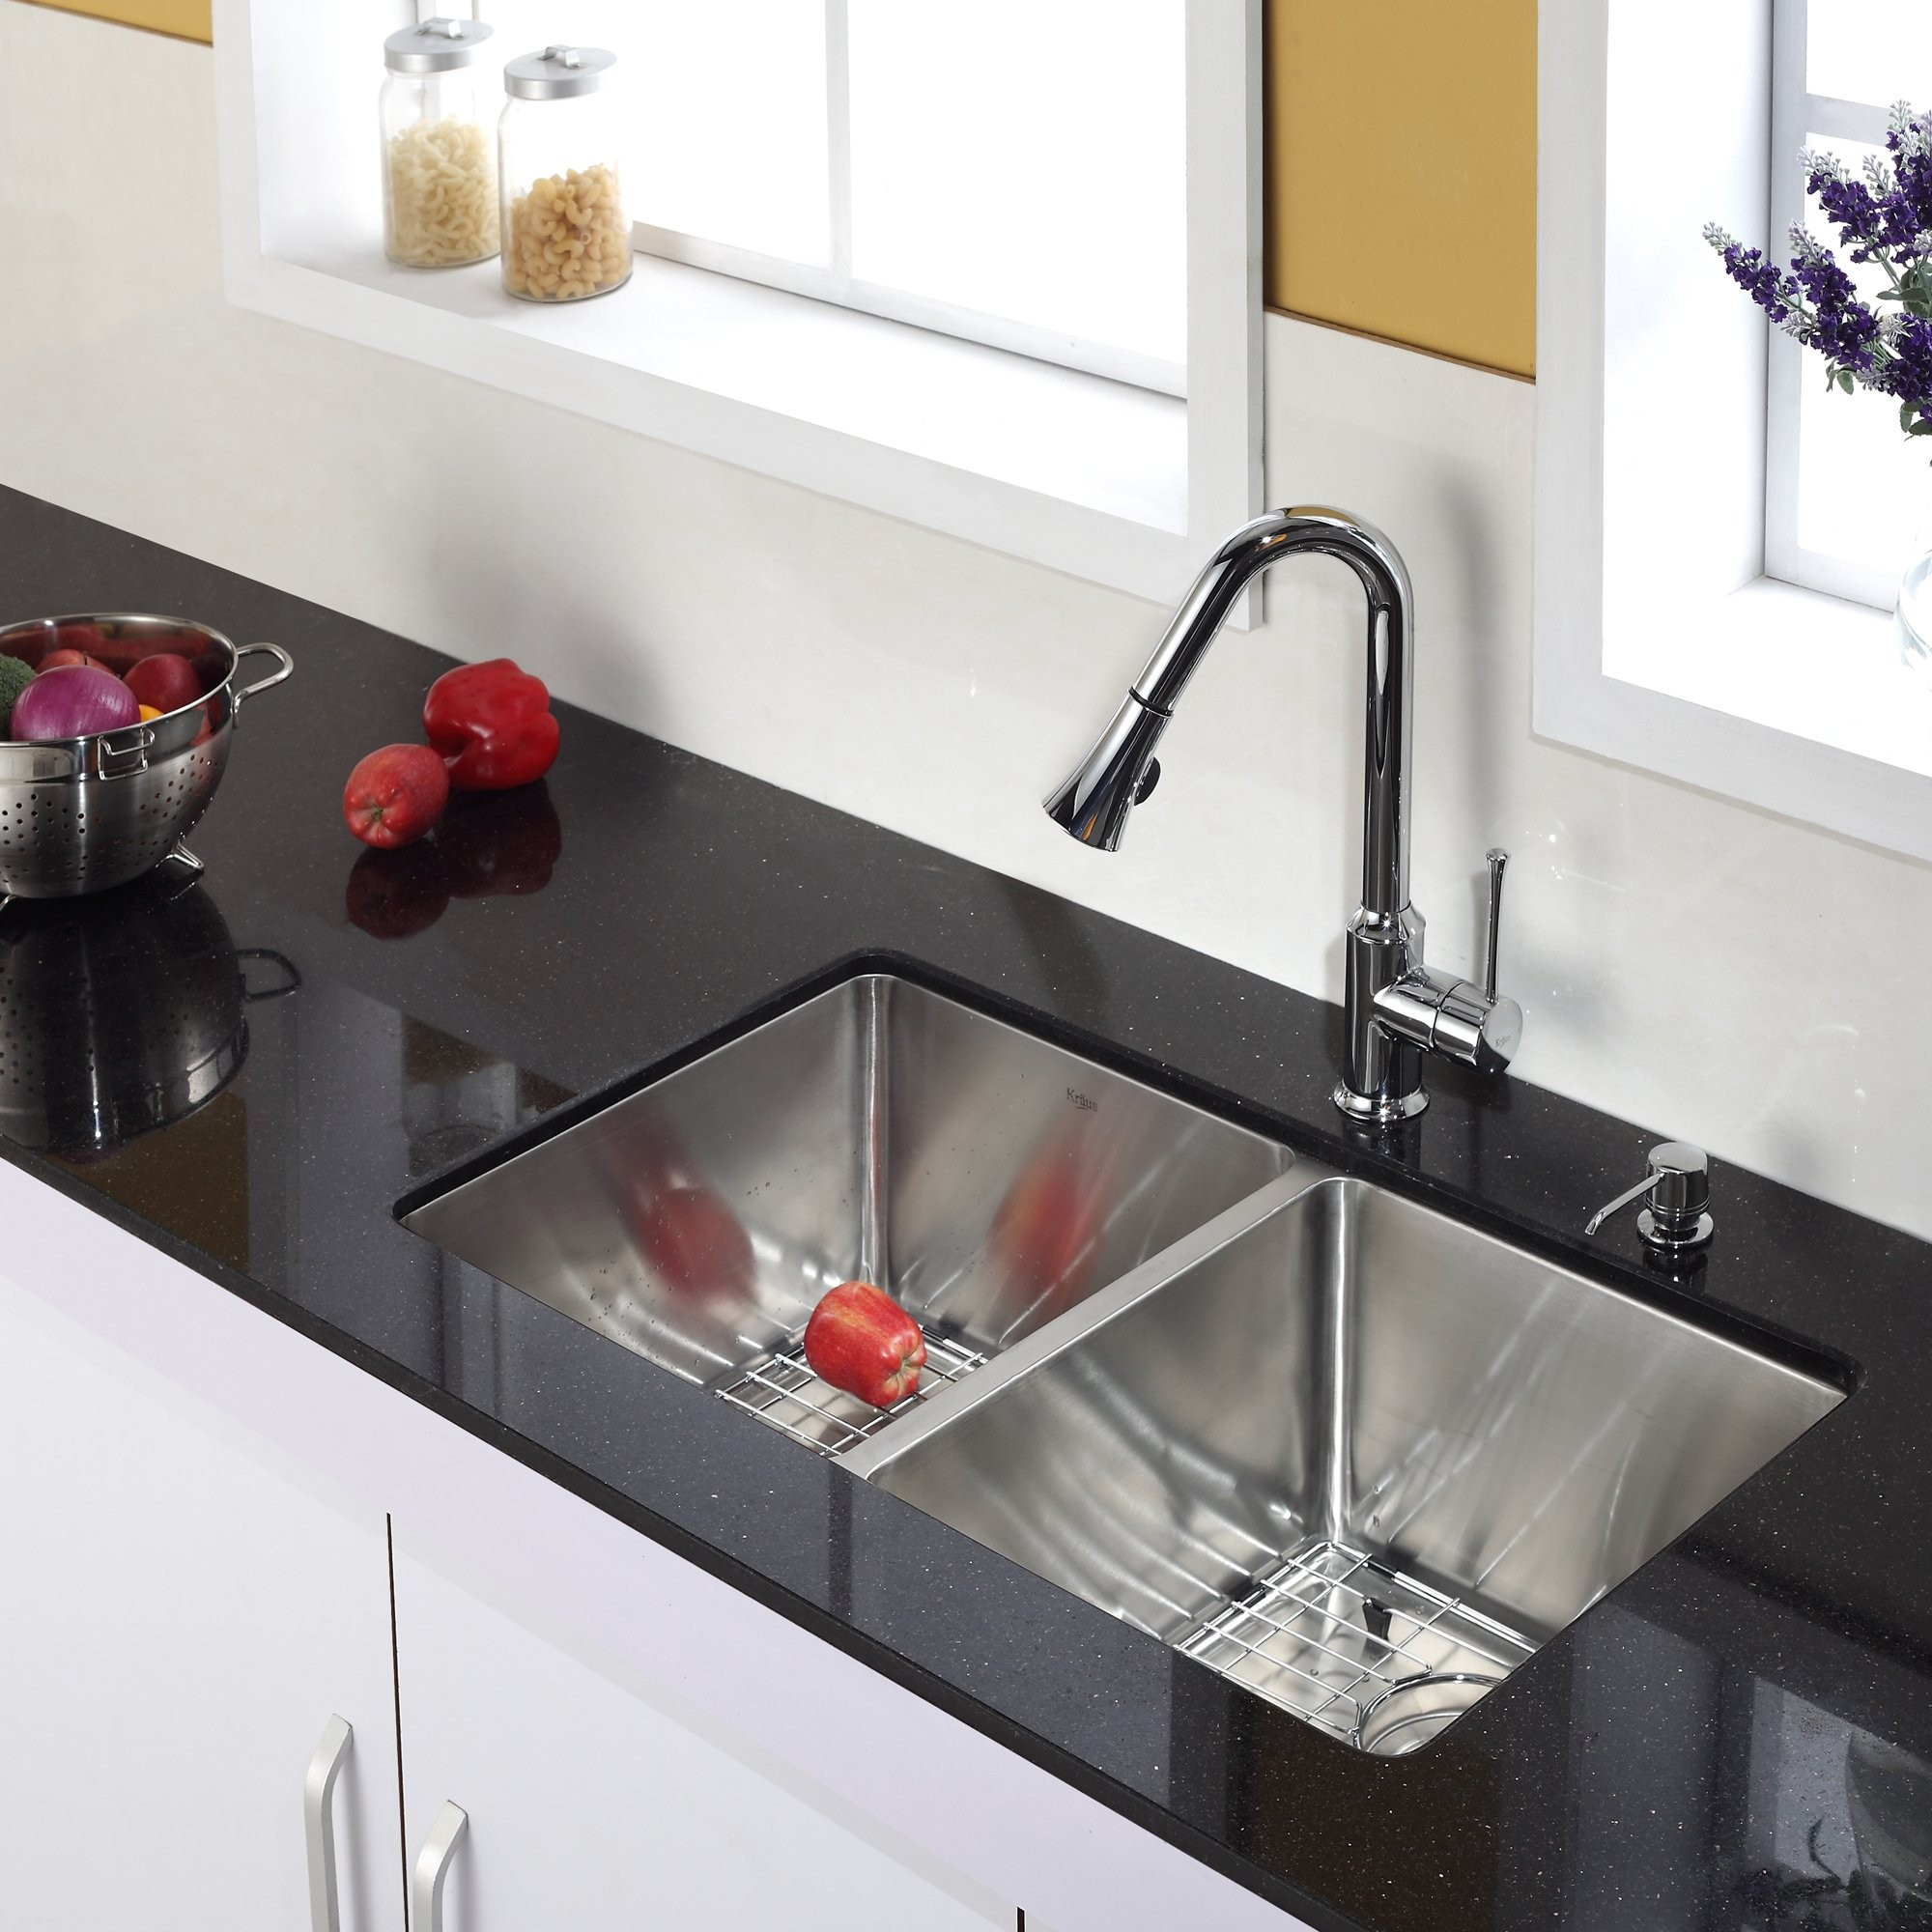 Discontinued-Single Lever Pull Out Kitchen Faucet and Soap Dispenser Chrome